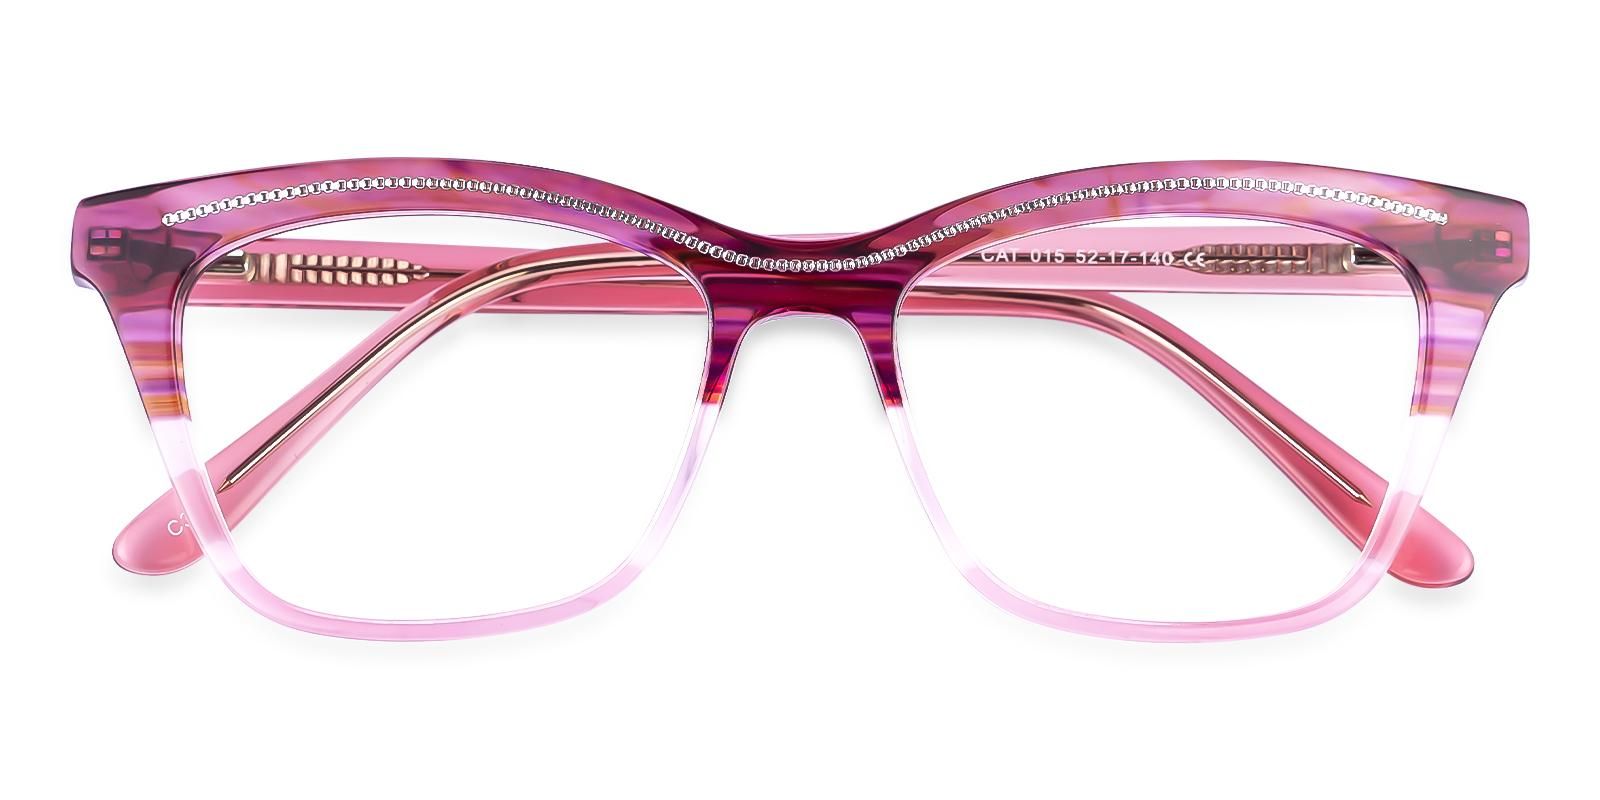 Kate Red Acetate Eyeglasses , Fashion , SpringHinges , UniversalBridgeFit Frames from ABBE Glasses